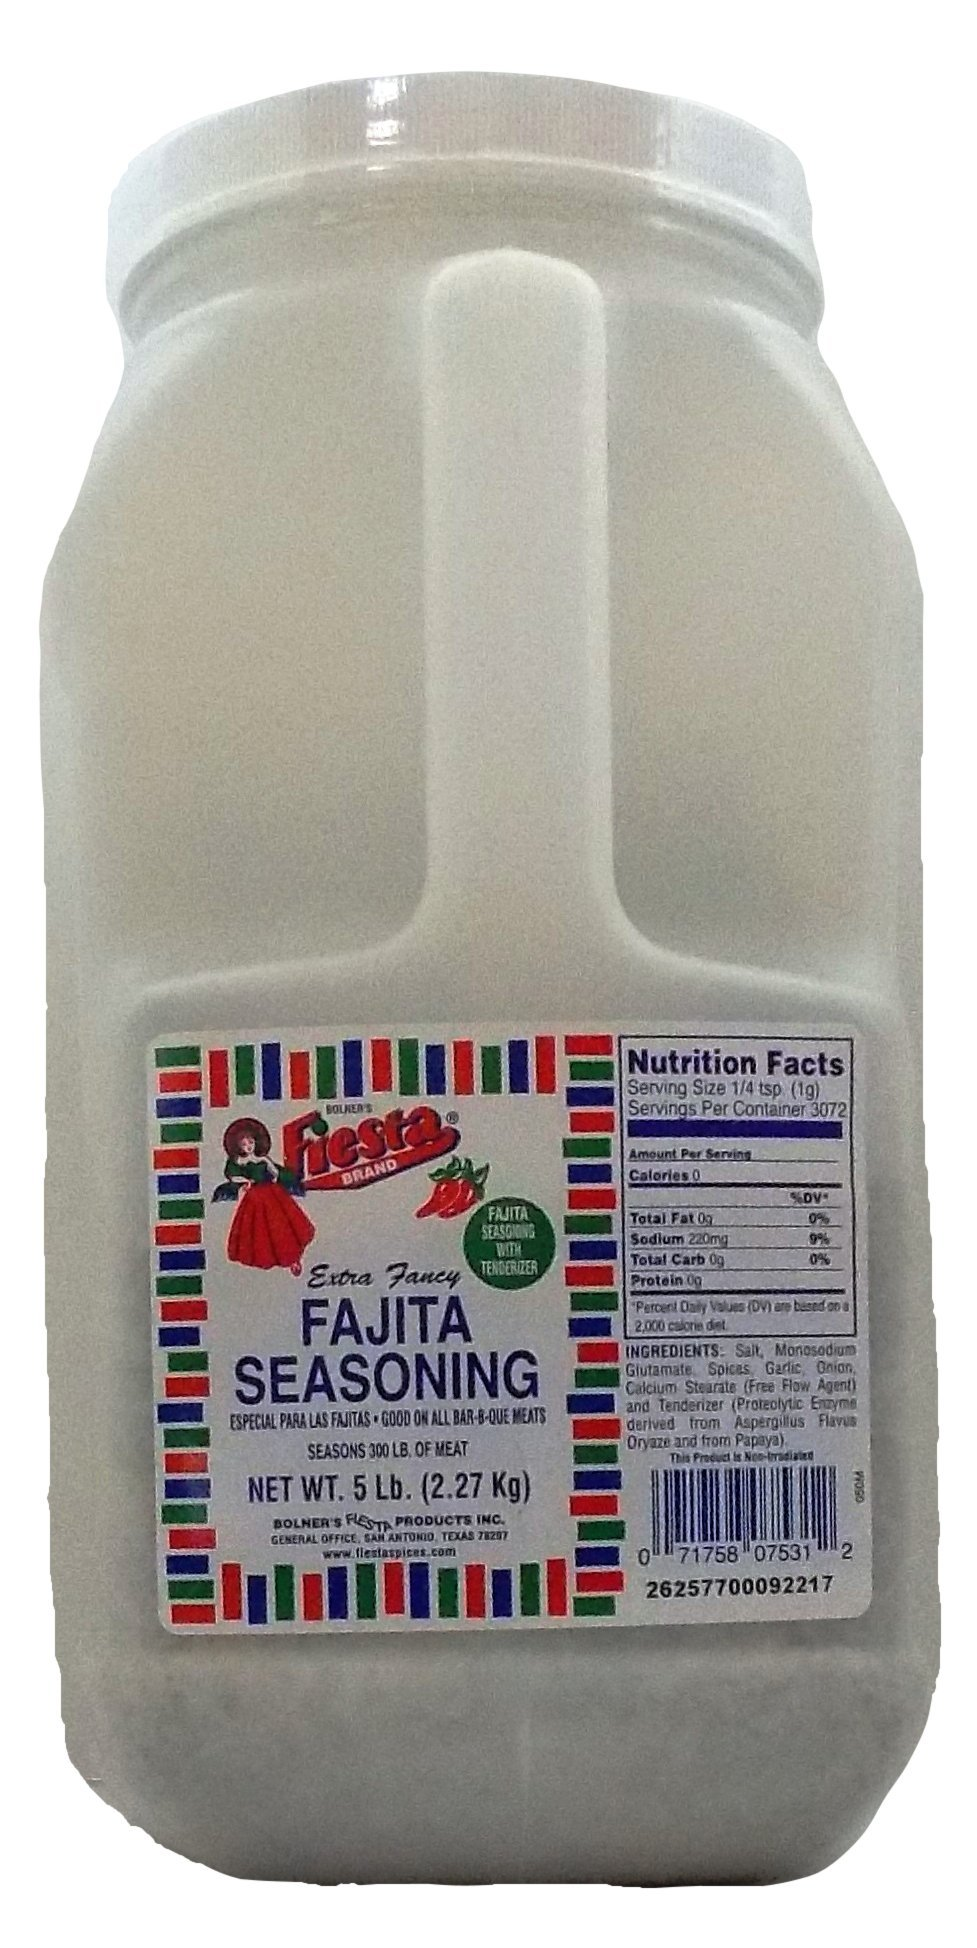 Bolner's Fiesta Extra Fancy Fajita Seasoning, 5 Lb.